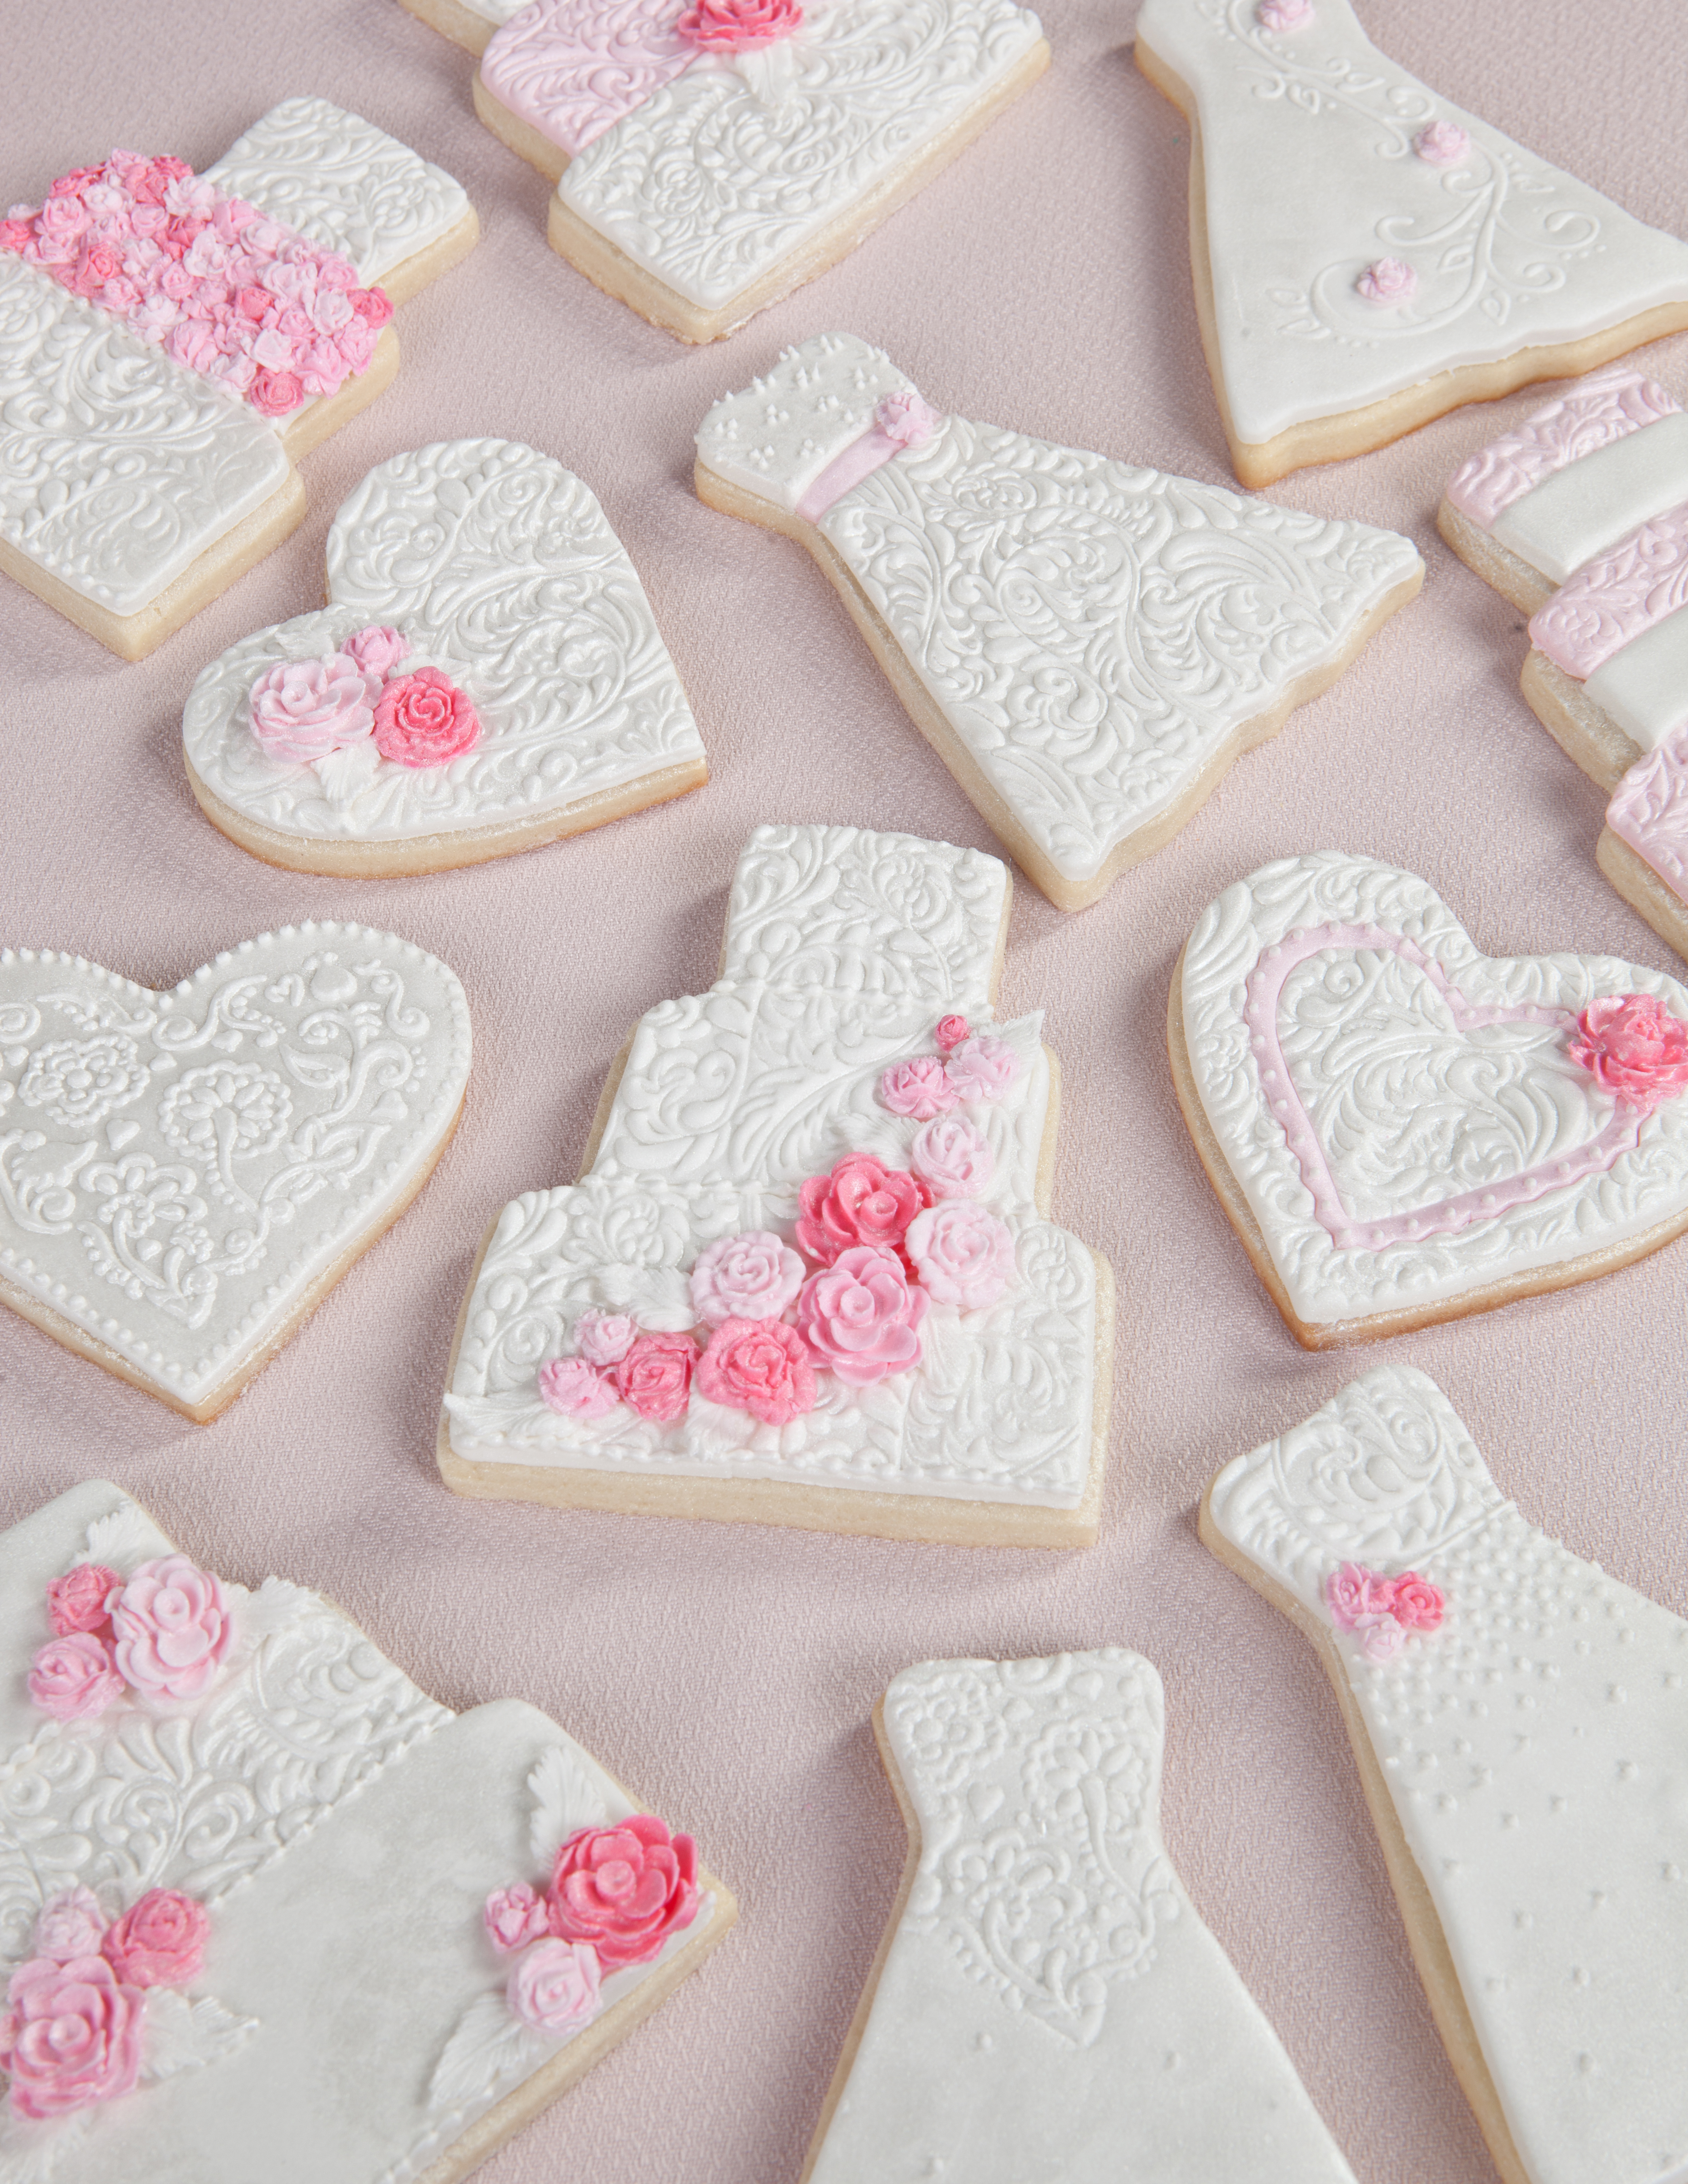 weddingbridal shower cookies wedding dress cookie cutter Pink and White Wedding Cookies